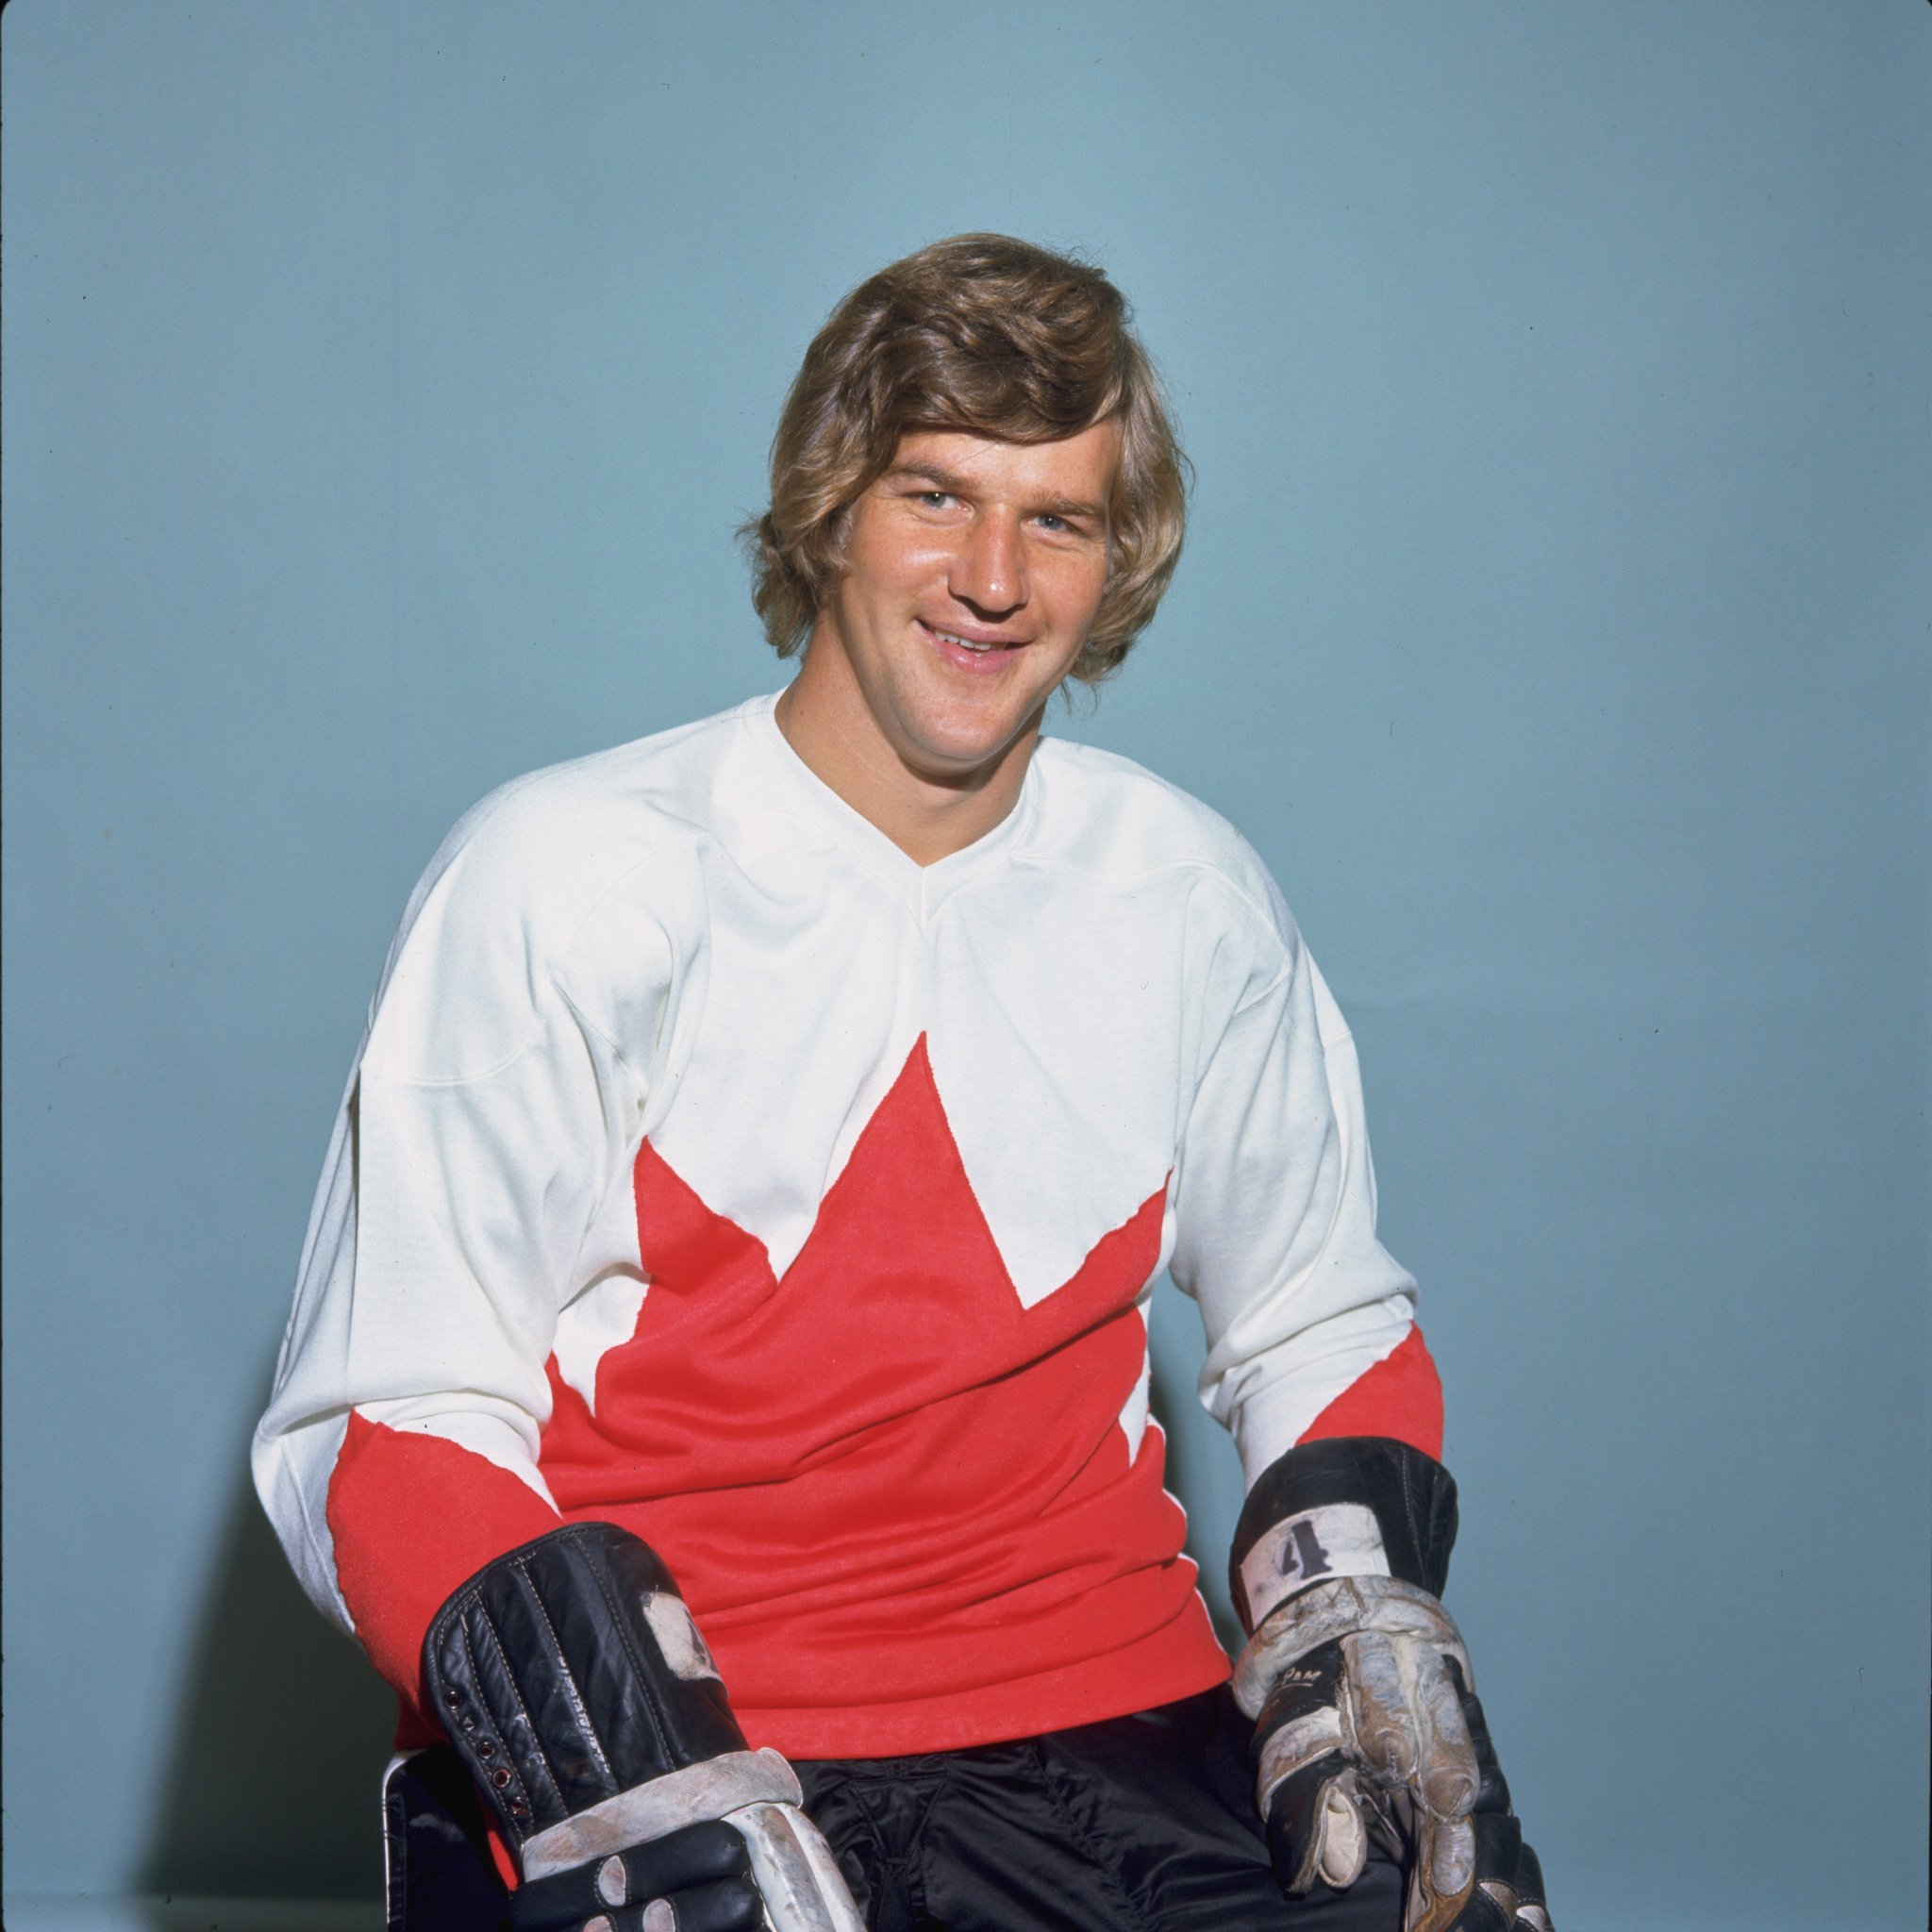 Look at that flow! Happy birthday, Mr. Bobby Orr.